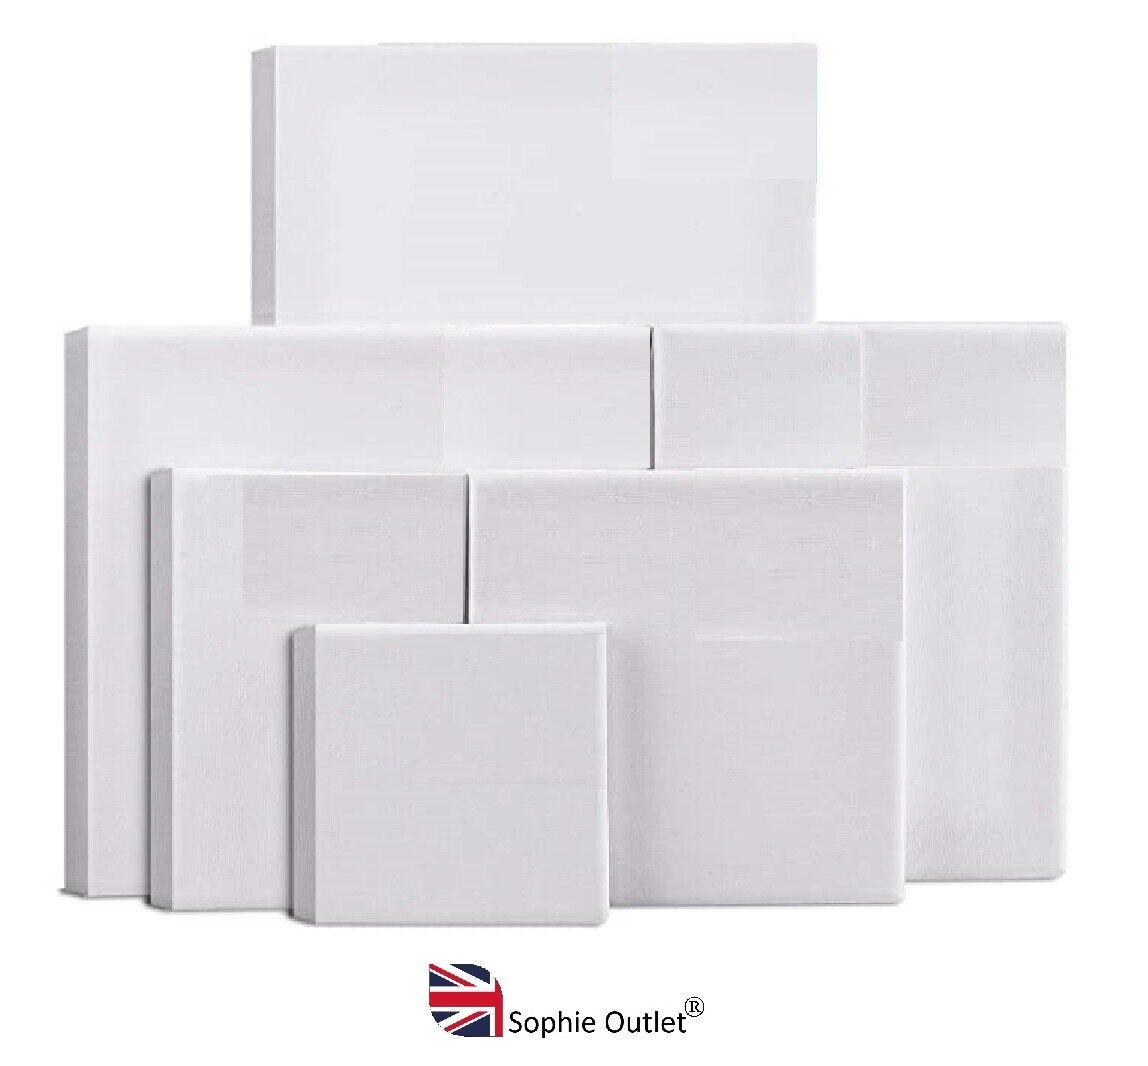 Professional Blank White ARTISTS CANVAS FRAME Painting Board Art Paint Craft UK